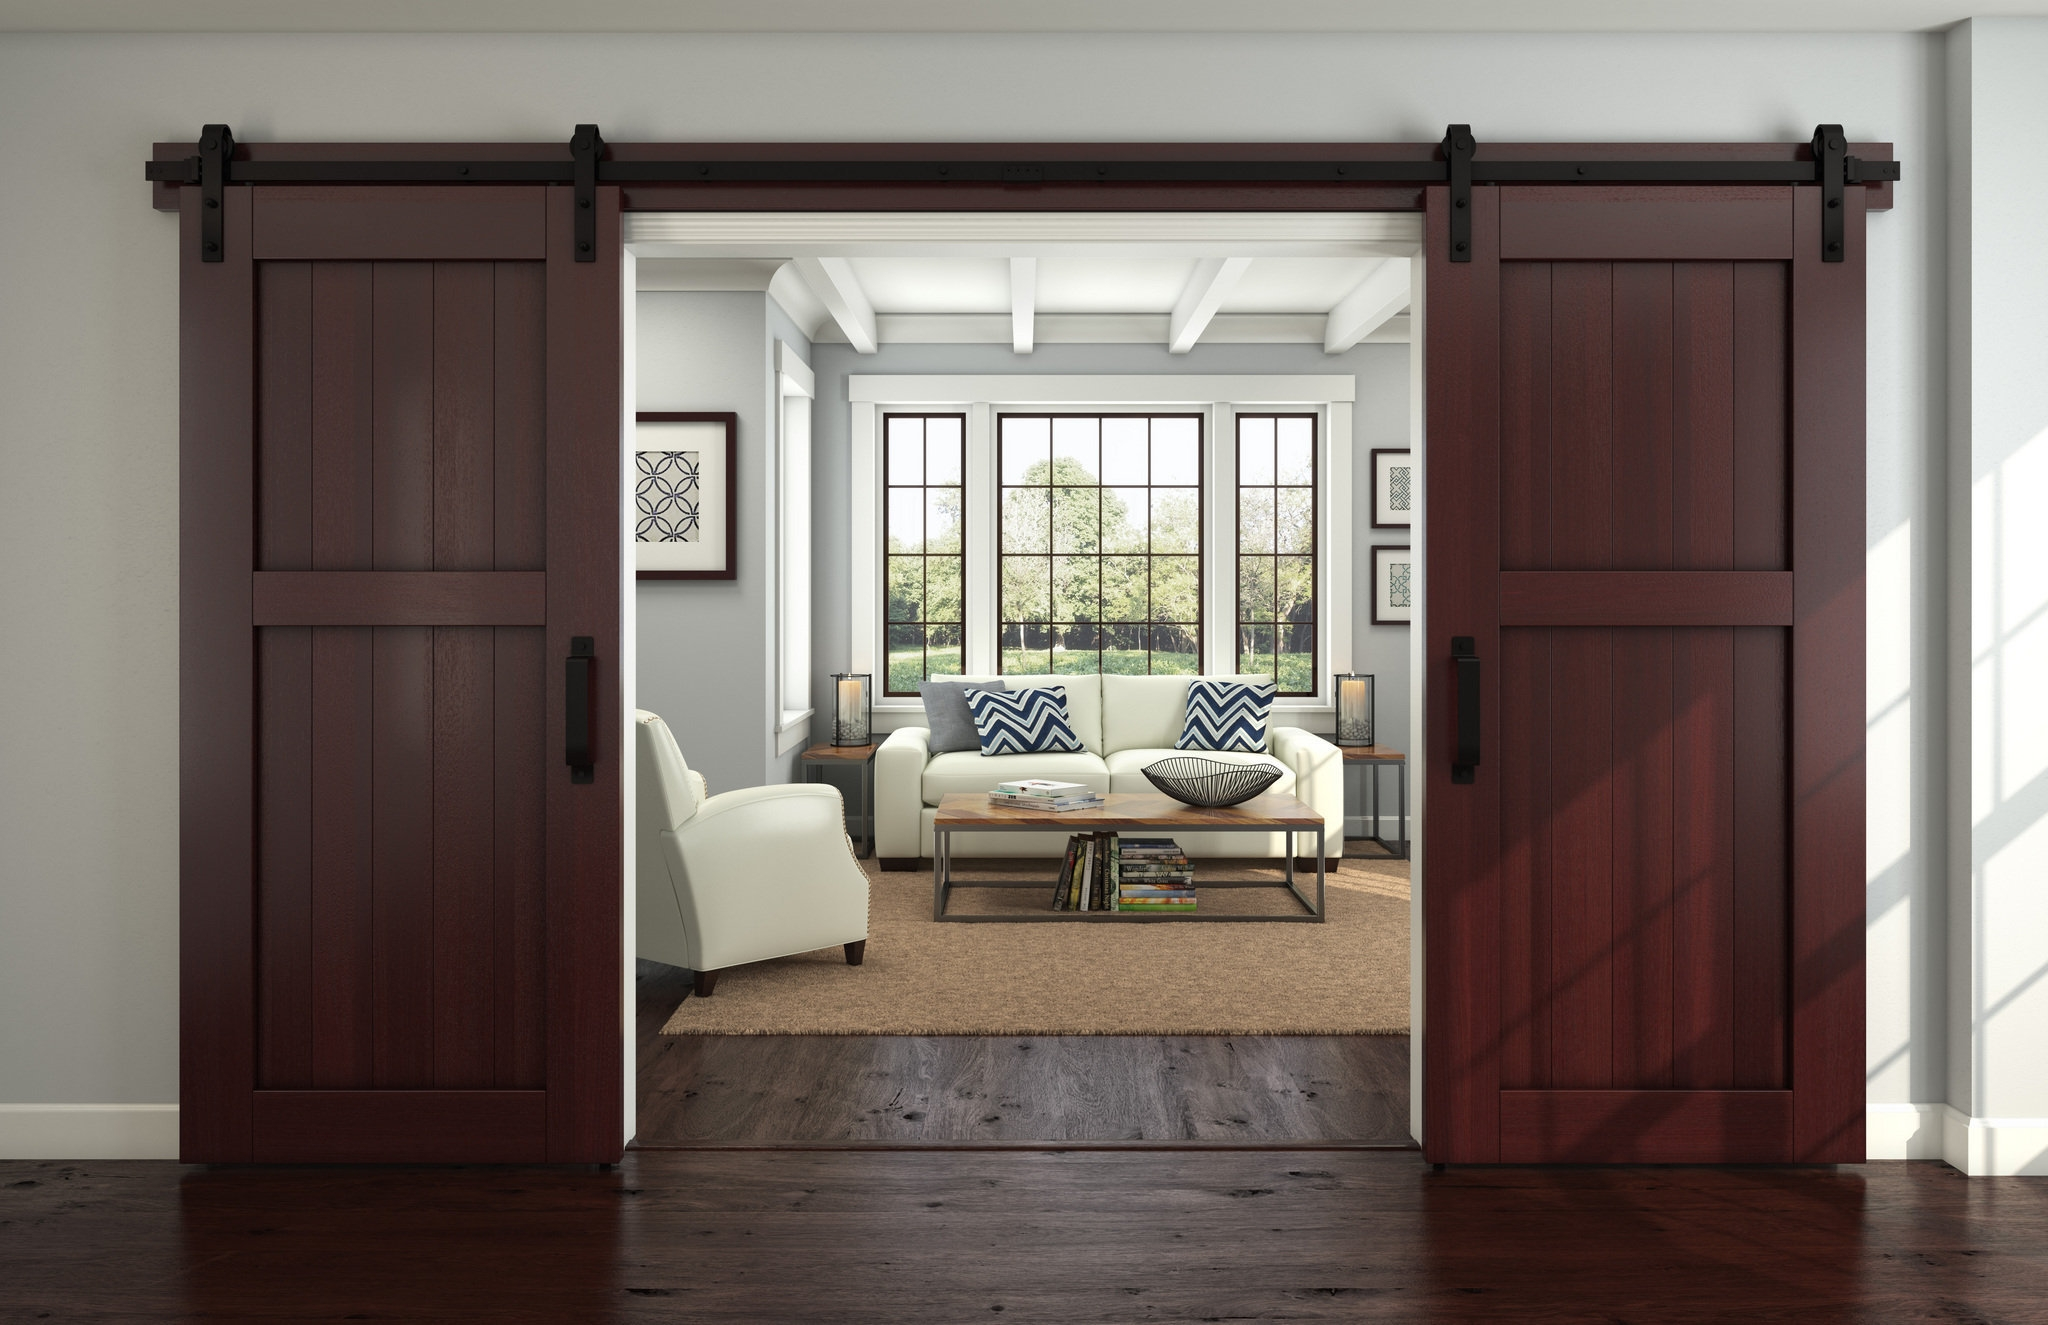 Interior Hanging Sliding Barn Doorsinterior design new ideas for barn doors nj